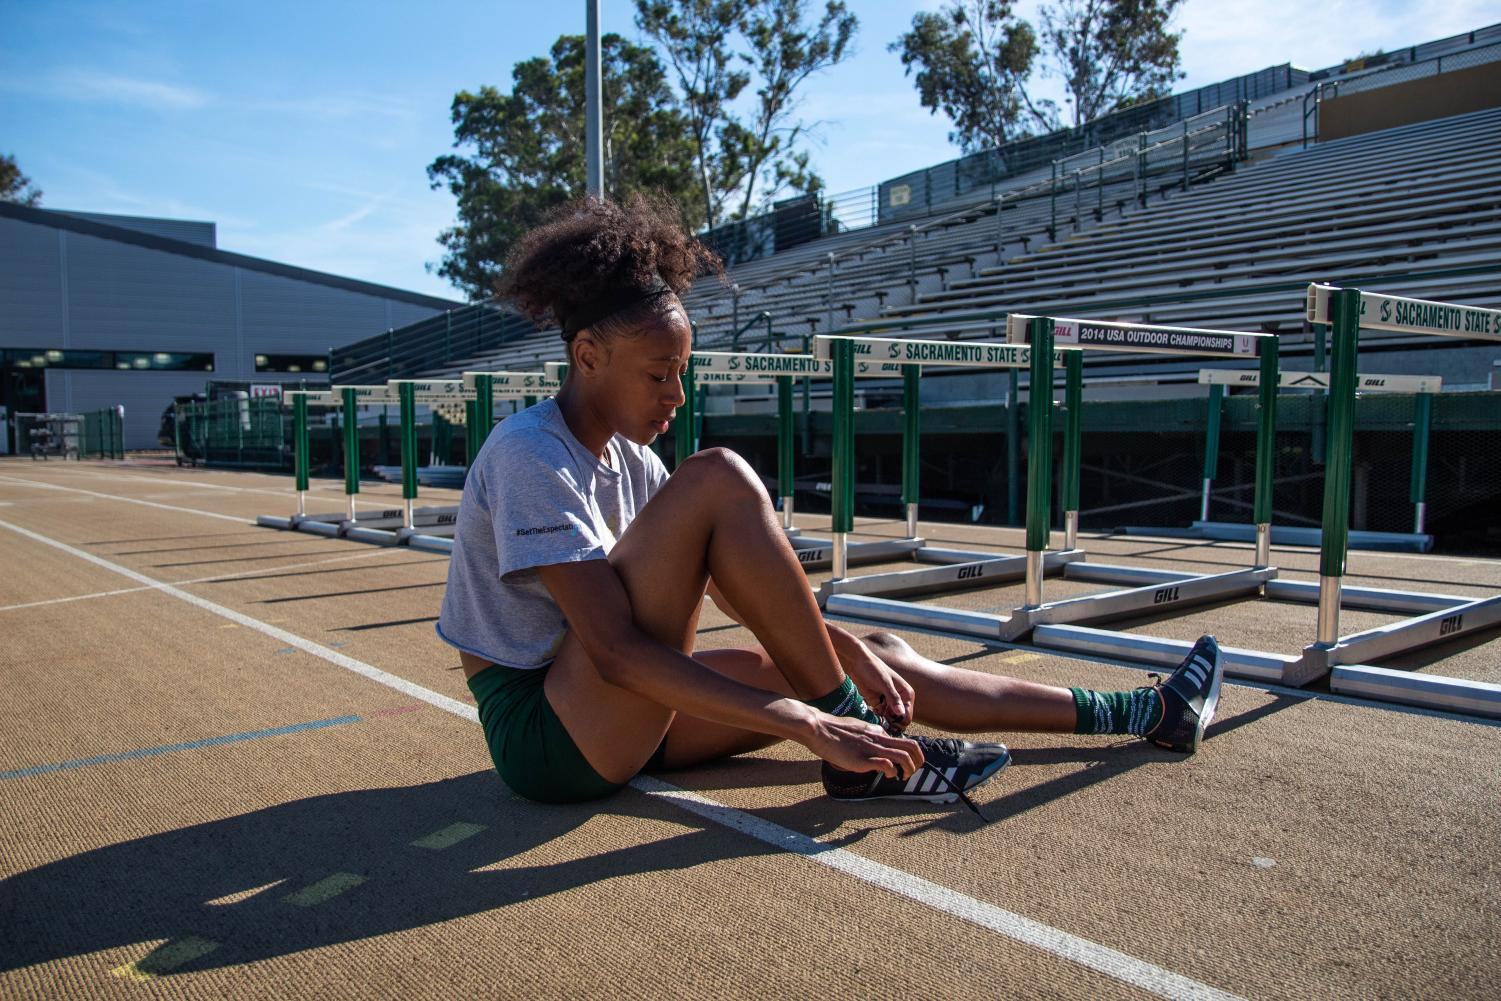 Track+athelete+Khala+Clarke+ties+her+shoelaces+after+her+Thursday+practice.+Clarke+is+a+journalism+major+who+splits+her+time+between+running+track+and+keeping+up+with+her+blog%2C+Evolved+Creativity.